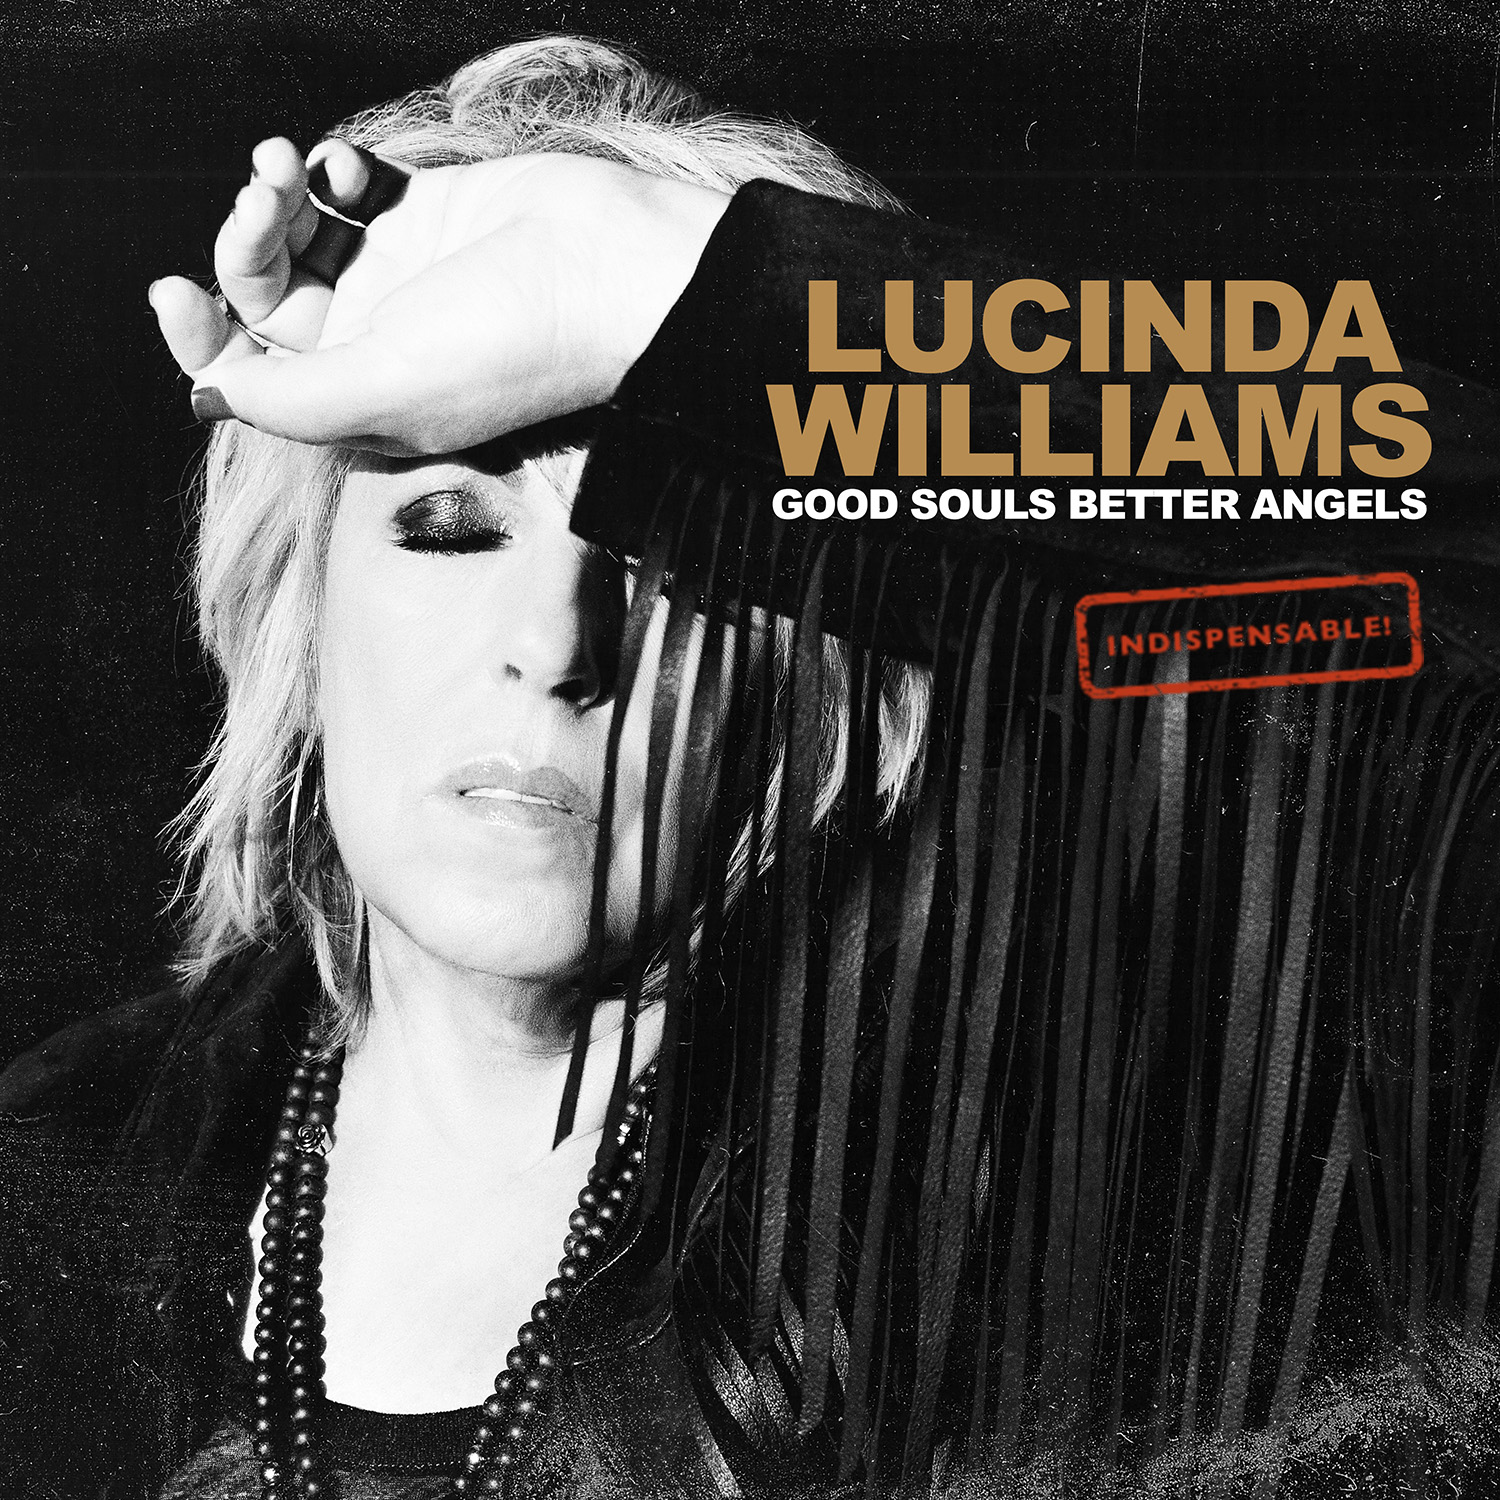 Lucinda Williams – Good Souls Better Angels